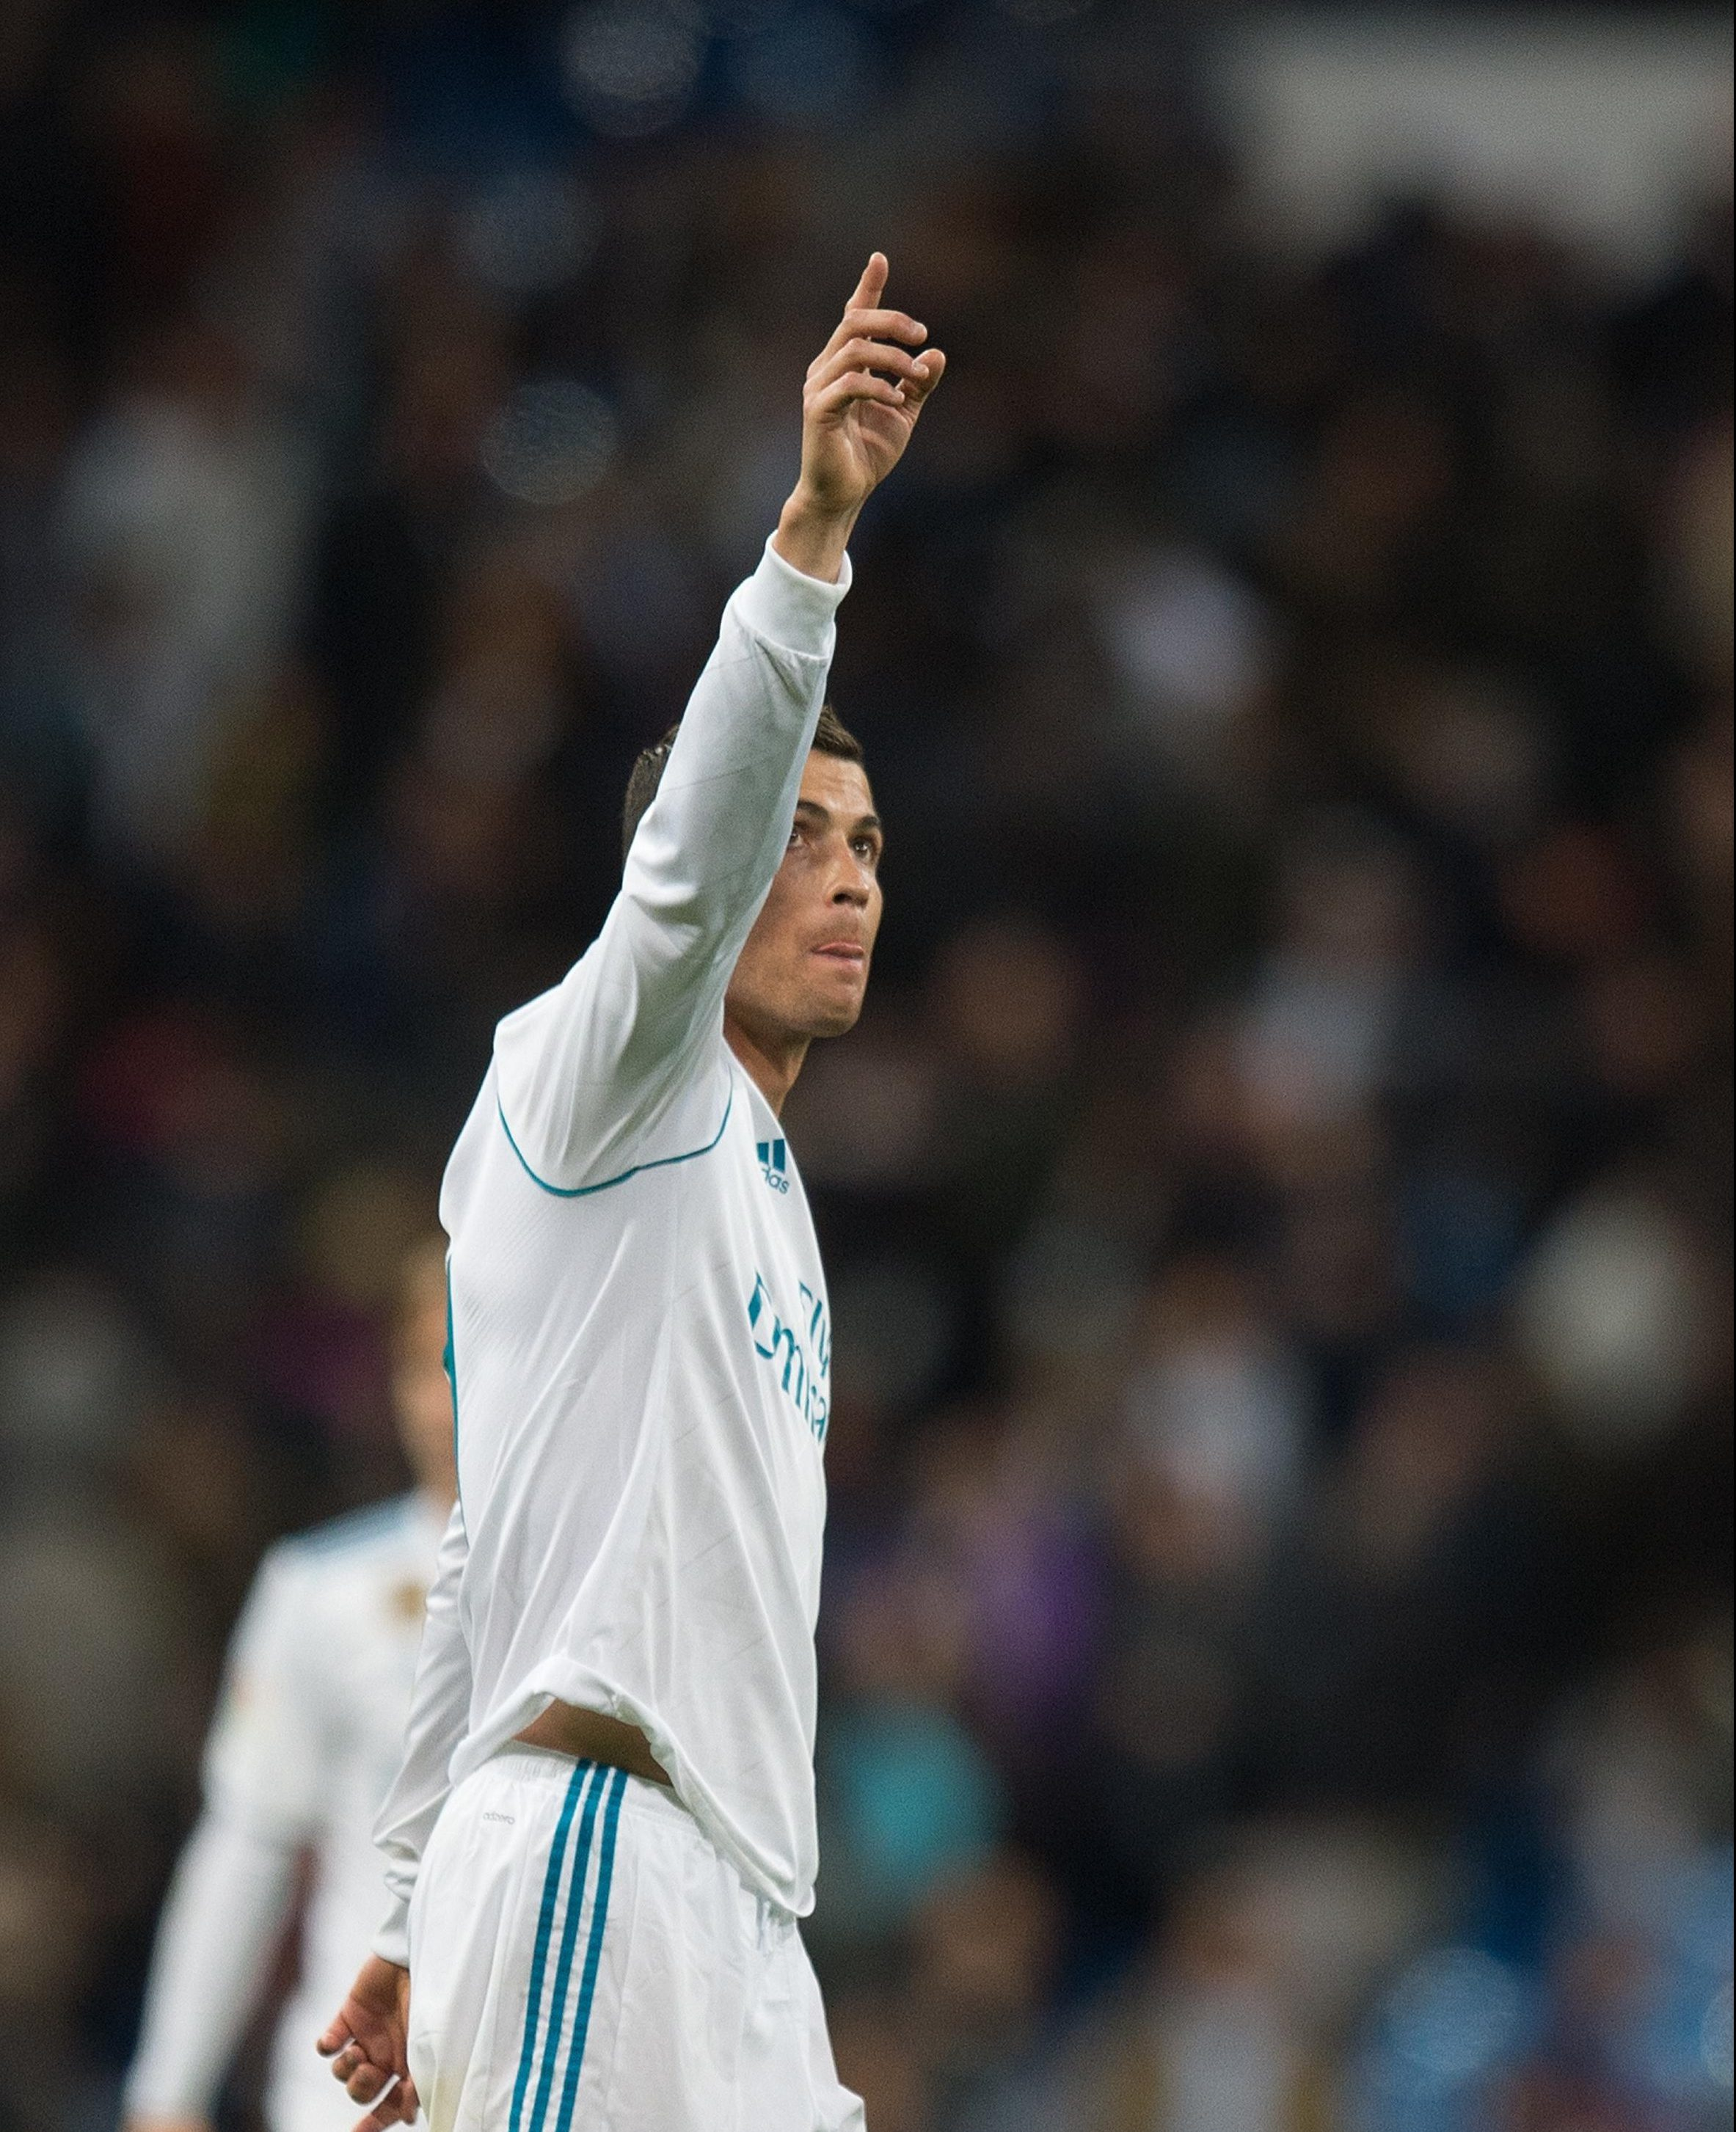 Real Madrid and Ronaldo are starting to find form